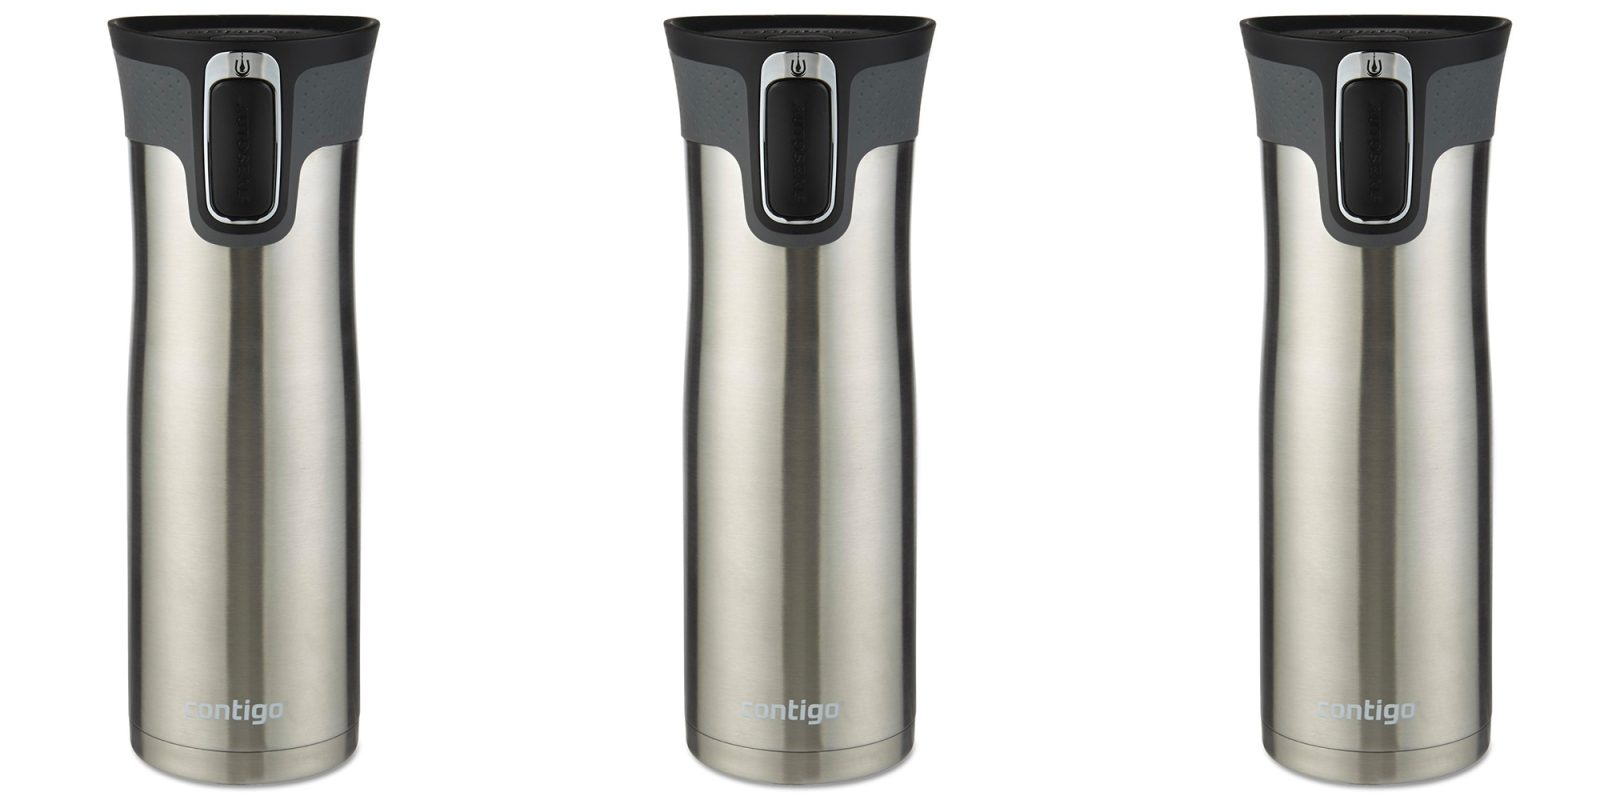 79bf270e0be Grab one of those popular Contigo Stainless Travel Mugs at just ...